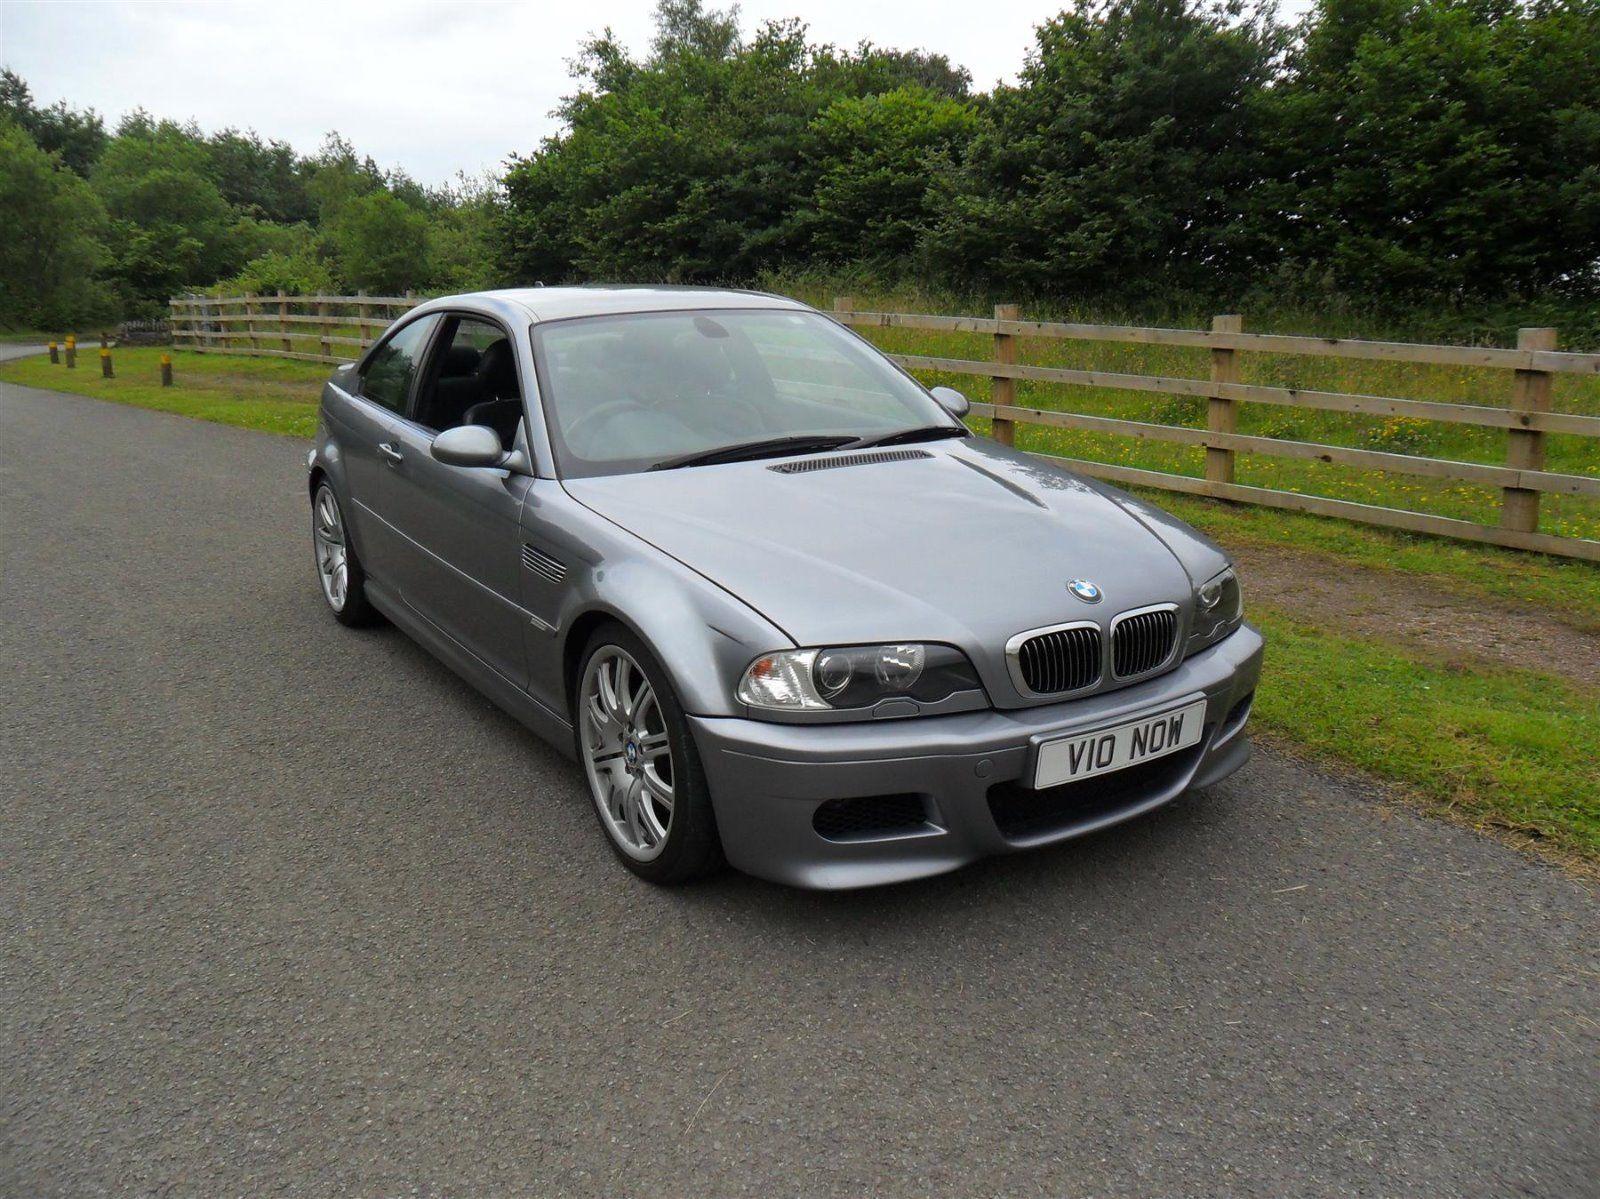 E46 Bmw M3 With V10 Engine For Sale Bmw Car Tuning